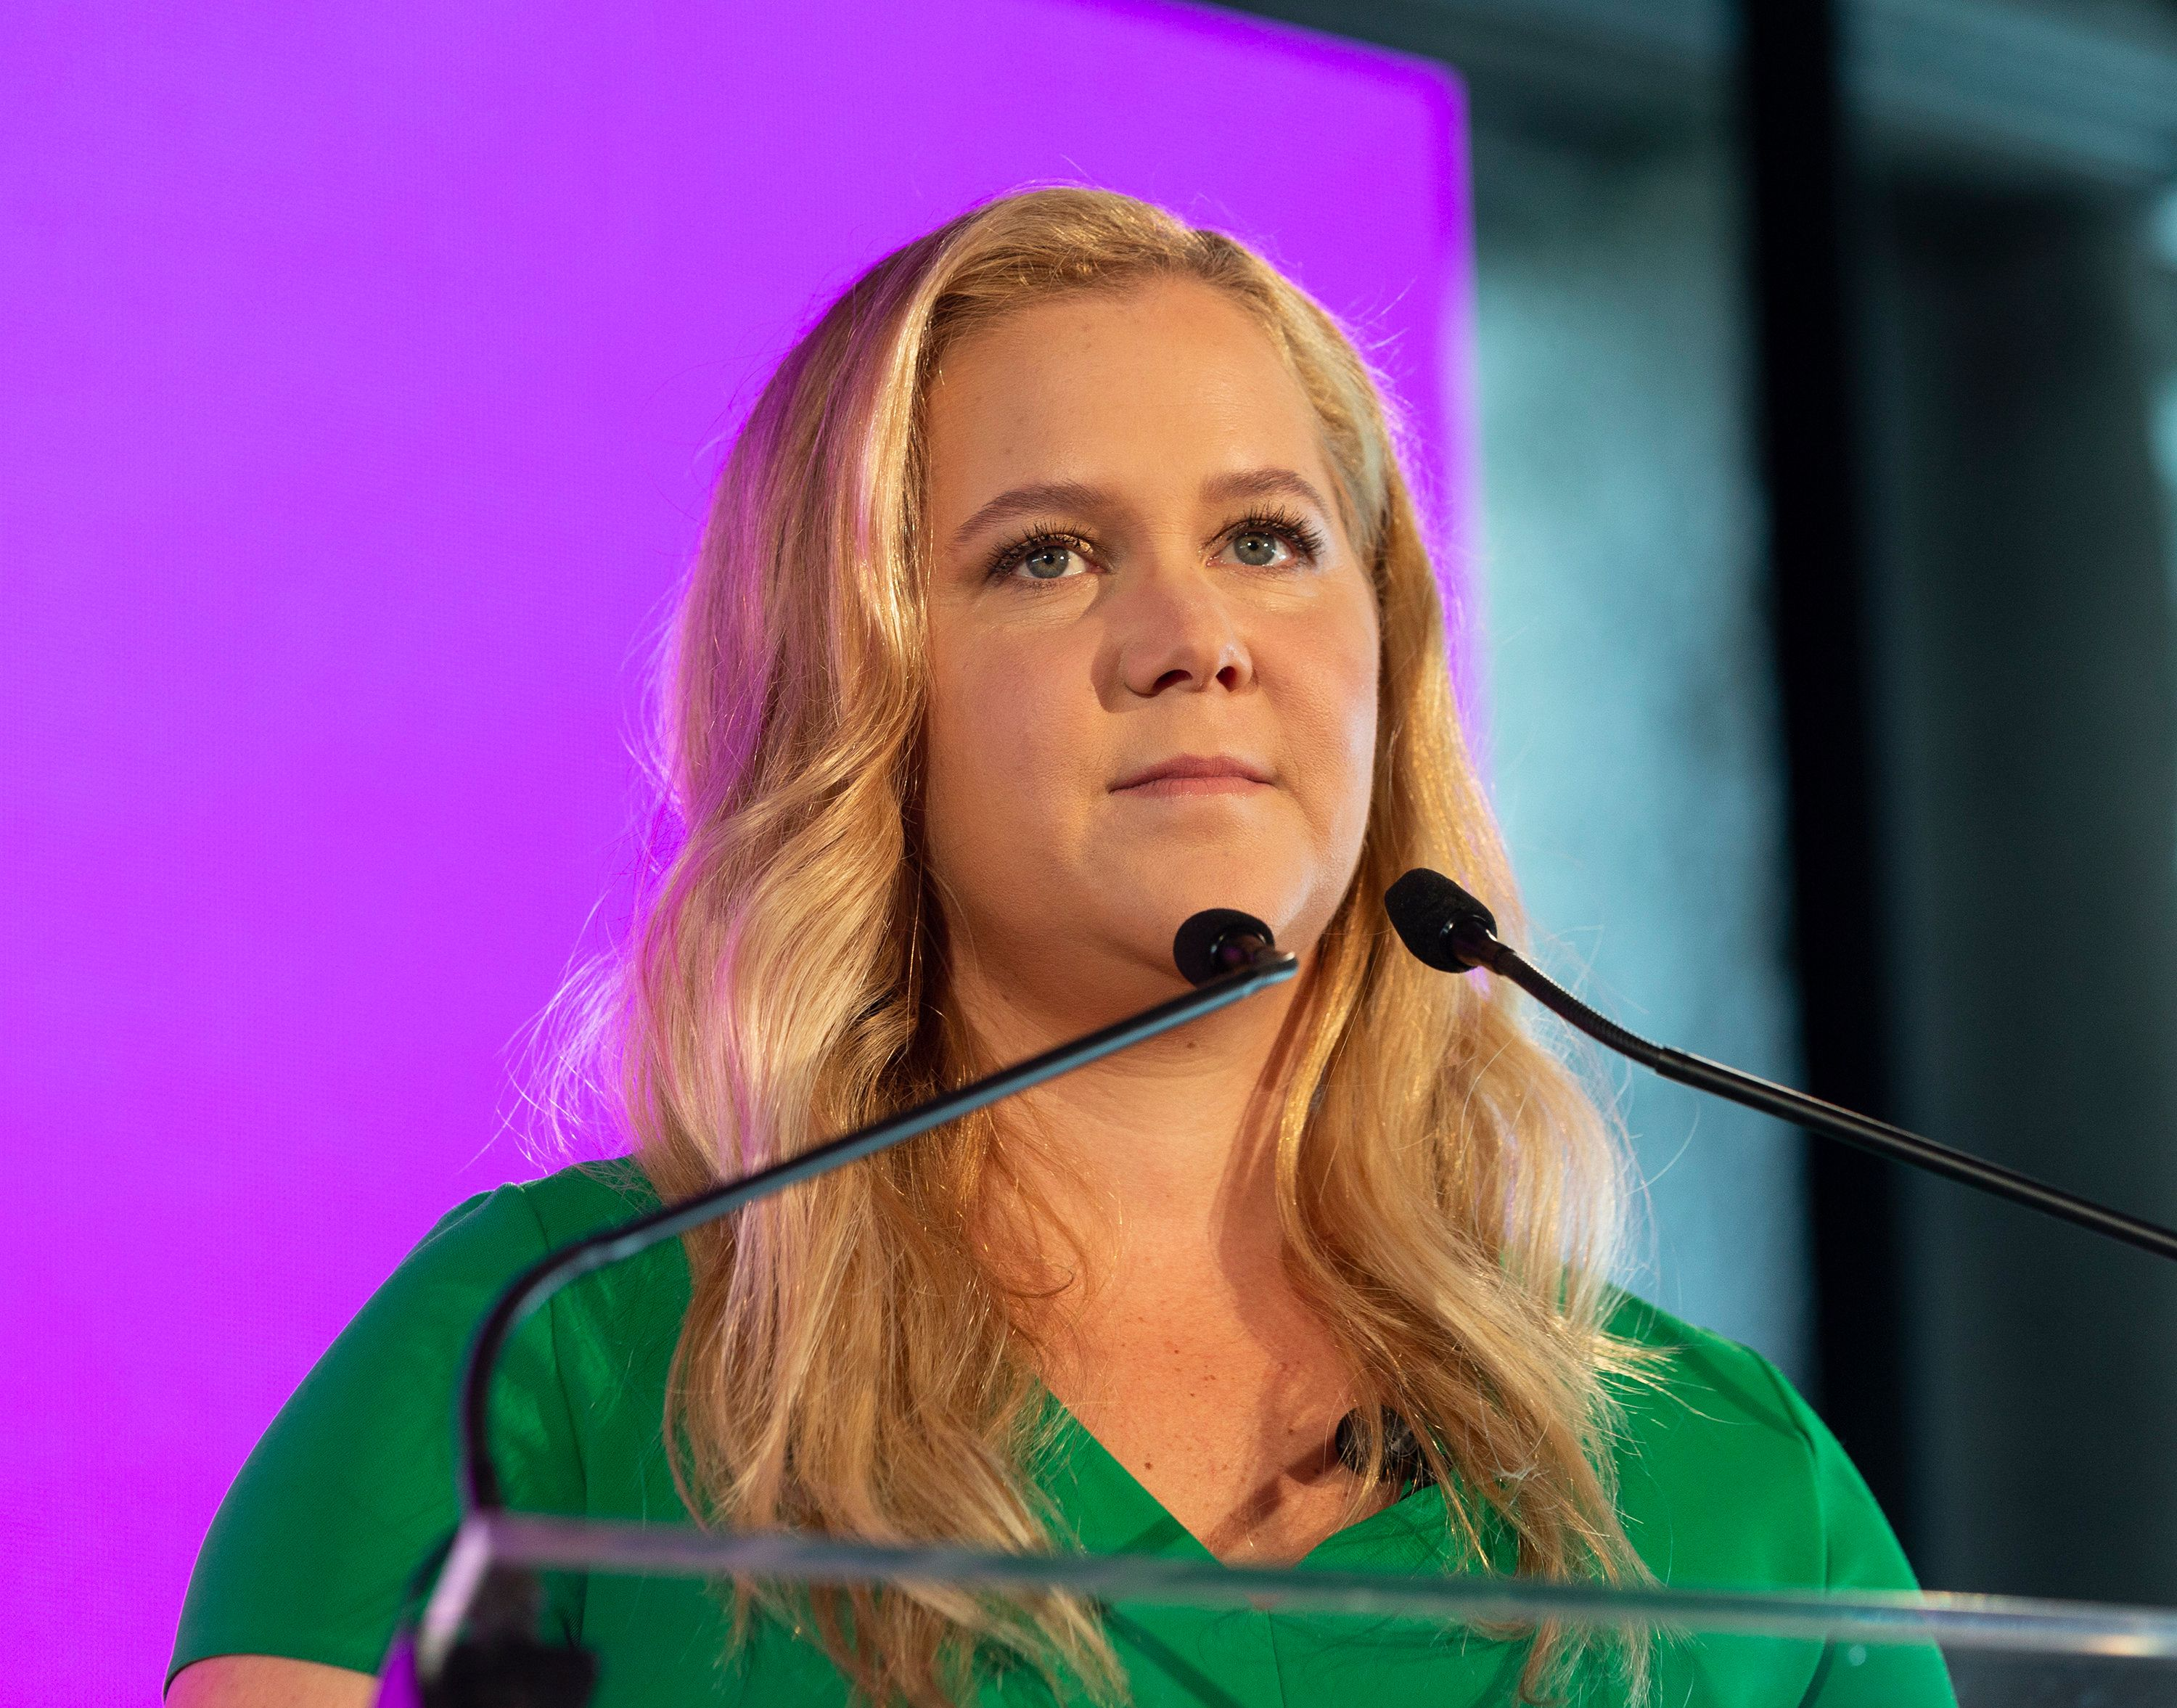 PIER 17, NEW YORK, UNITED STATES - 2018/08/08: Amy Schumer attends BlogHer18 creators summit Women inspiring women at Pier 17. (Photo by Lev Radin/Pacific Press/LightRocket via Getty Images)